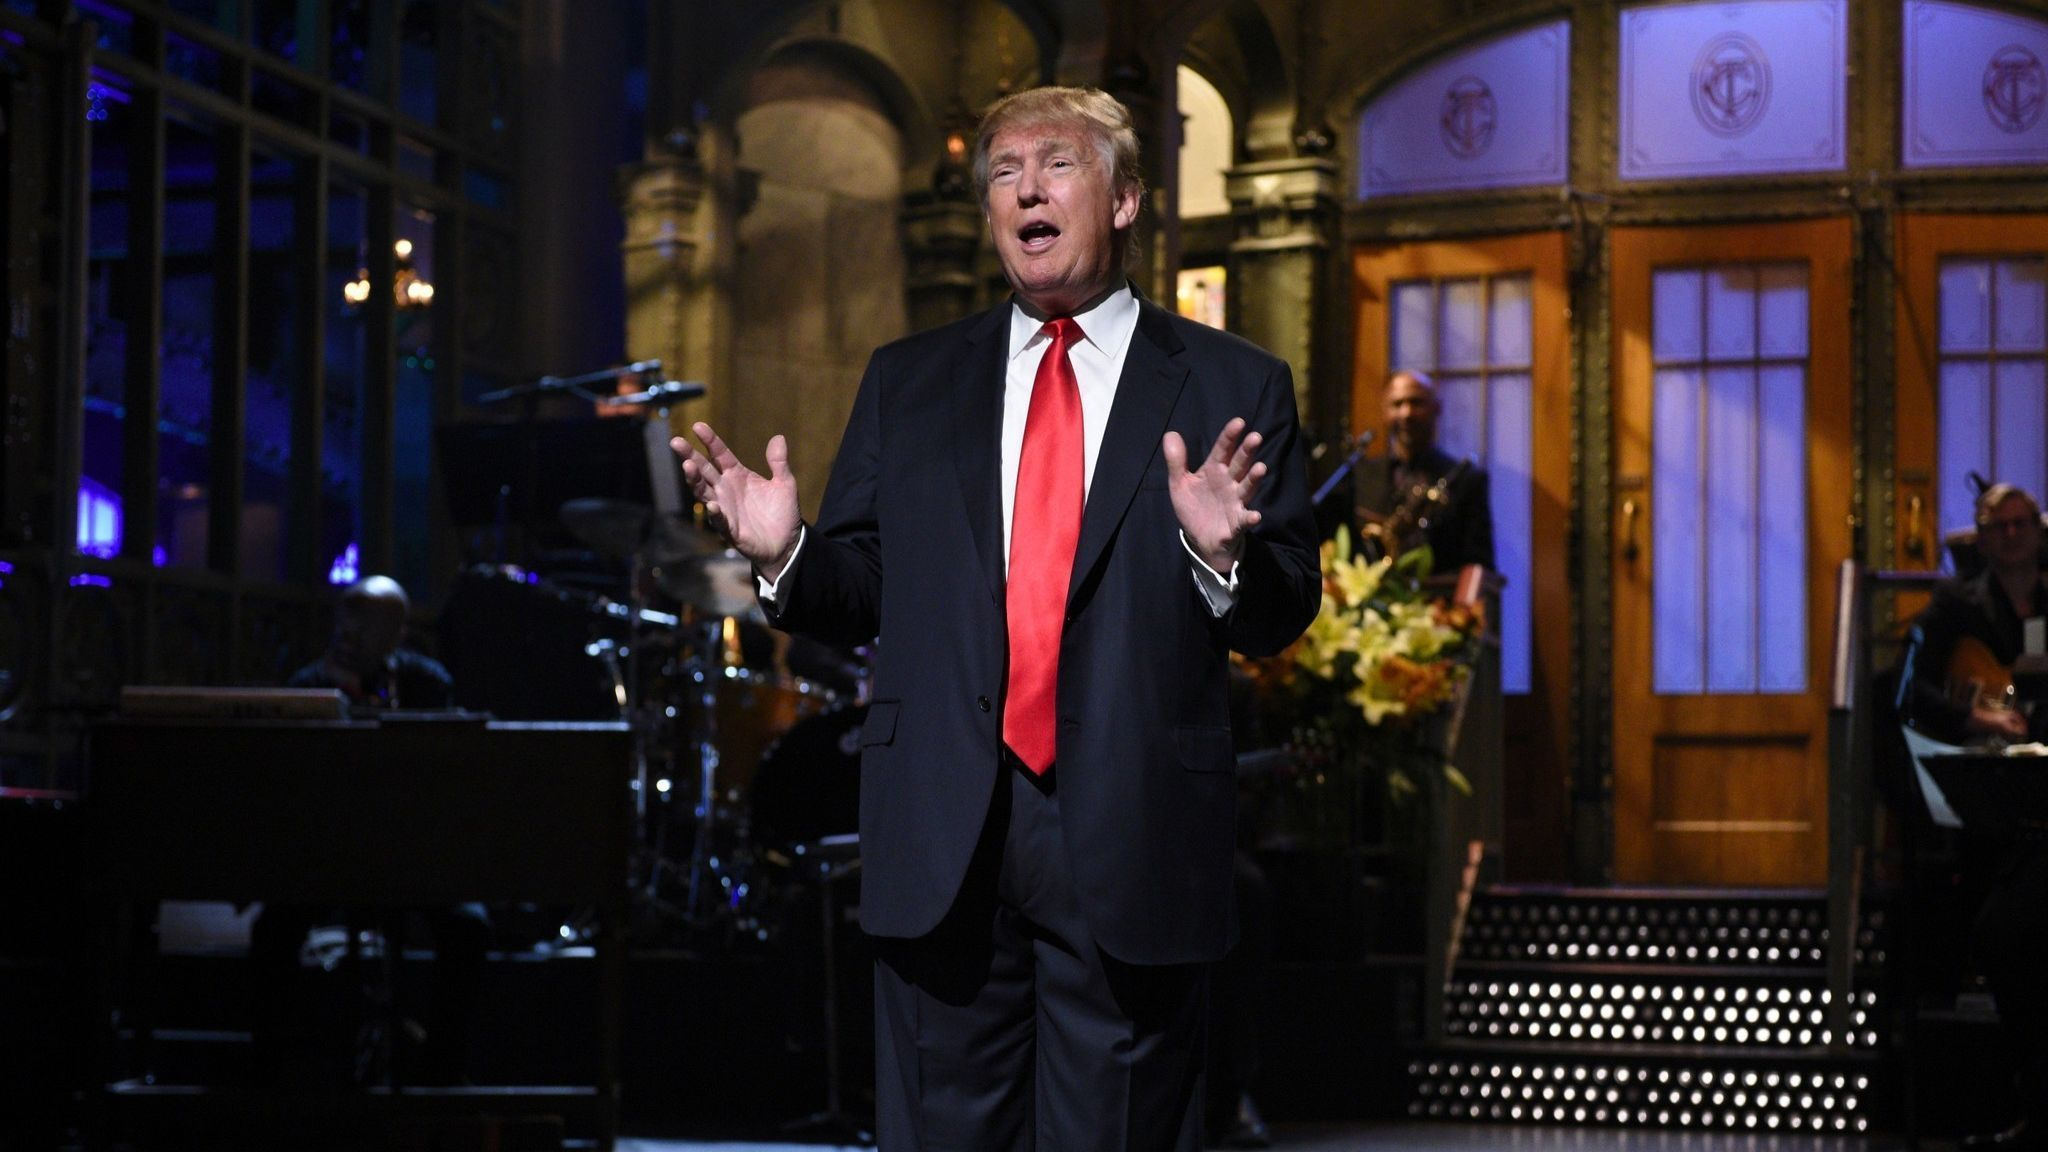 Trump versus 'Saturday Night Live': Actually, the president has a point